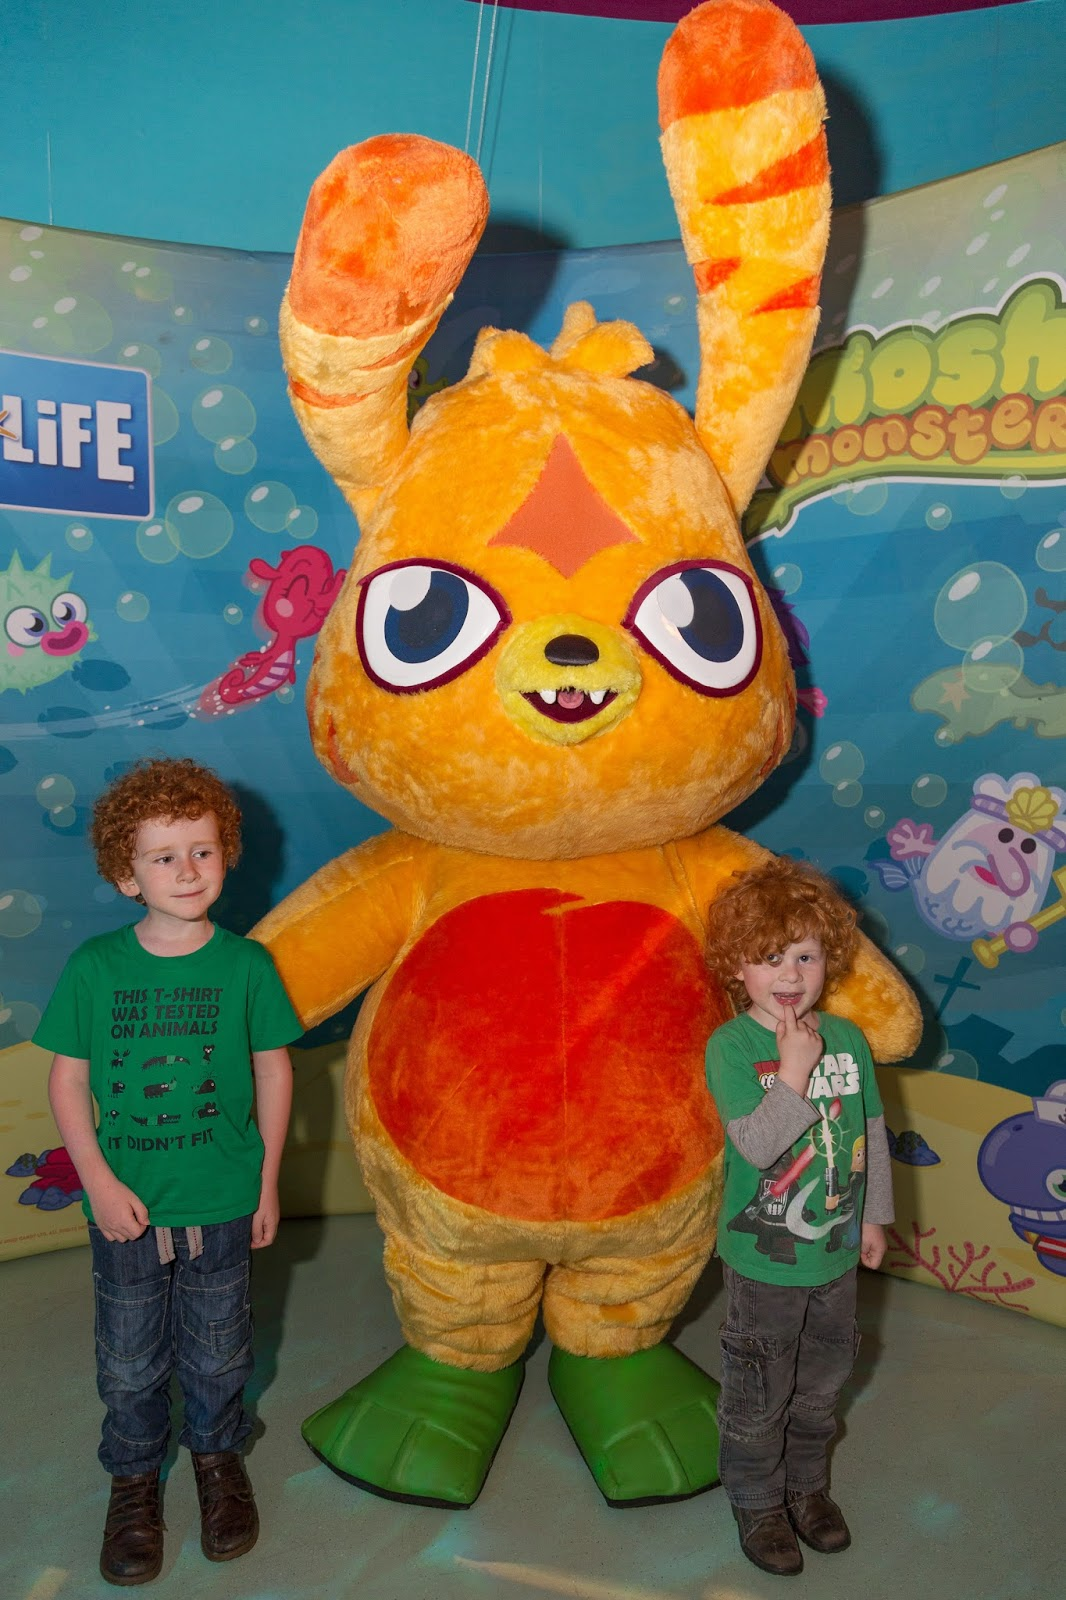 Moshi Monsters at Sea Life, Trafford Park, Manchester. Meeting Katsuma